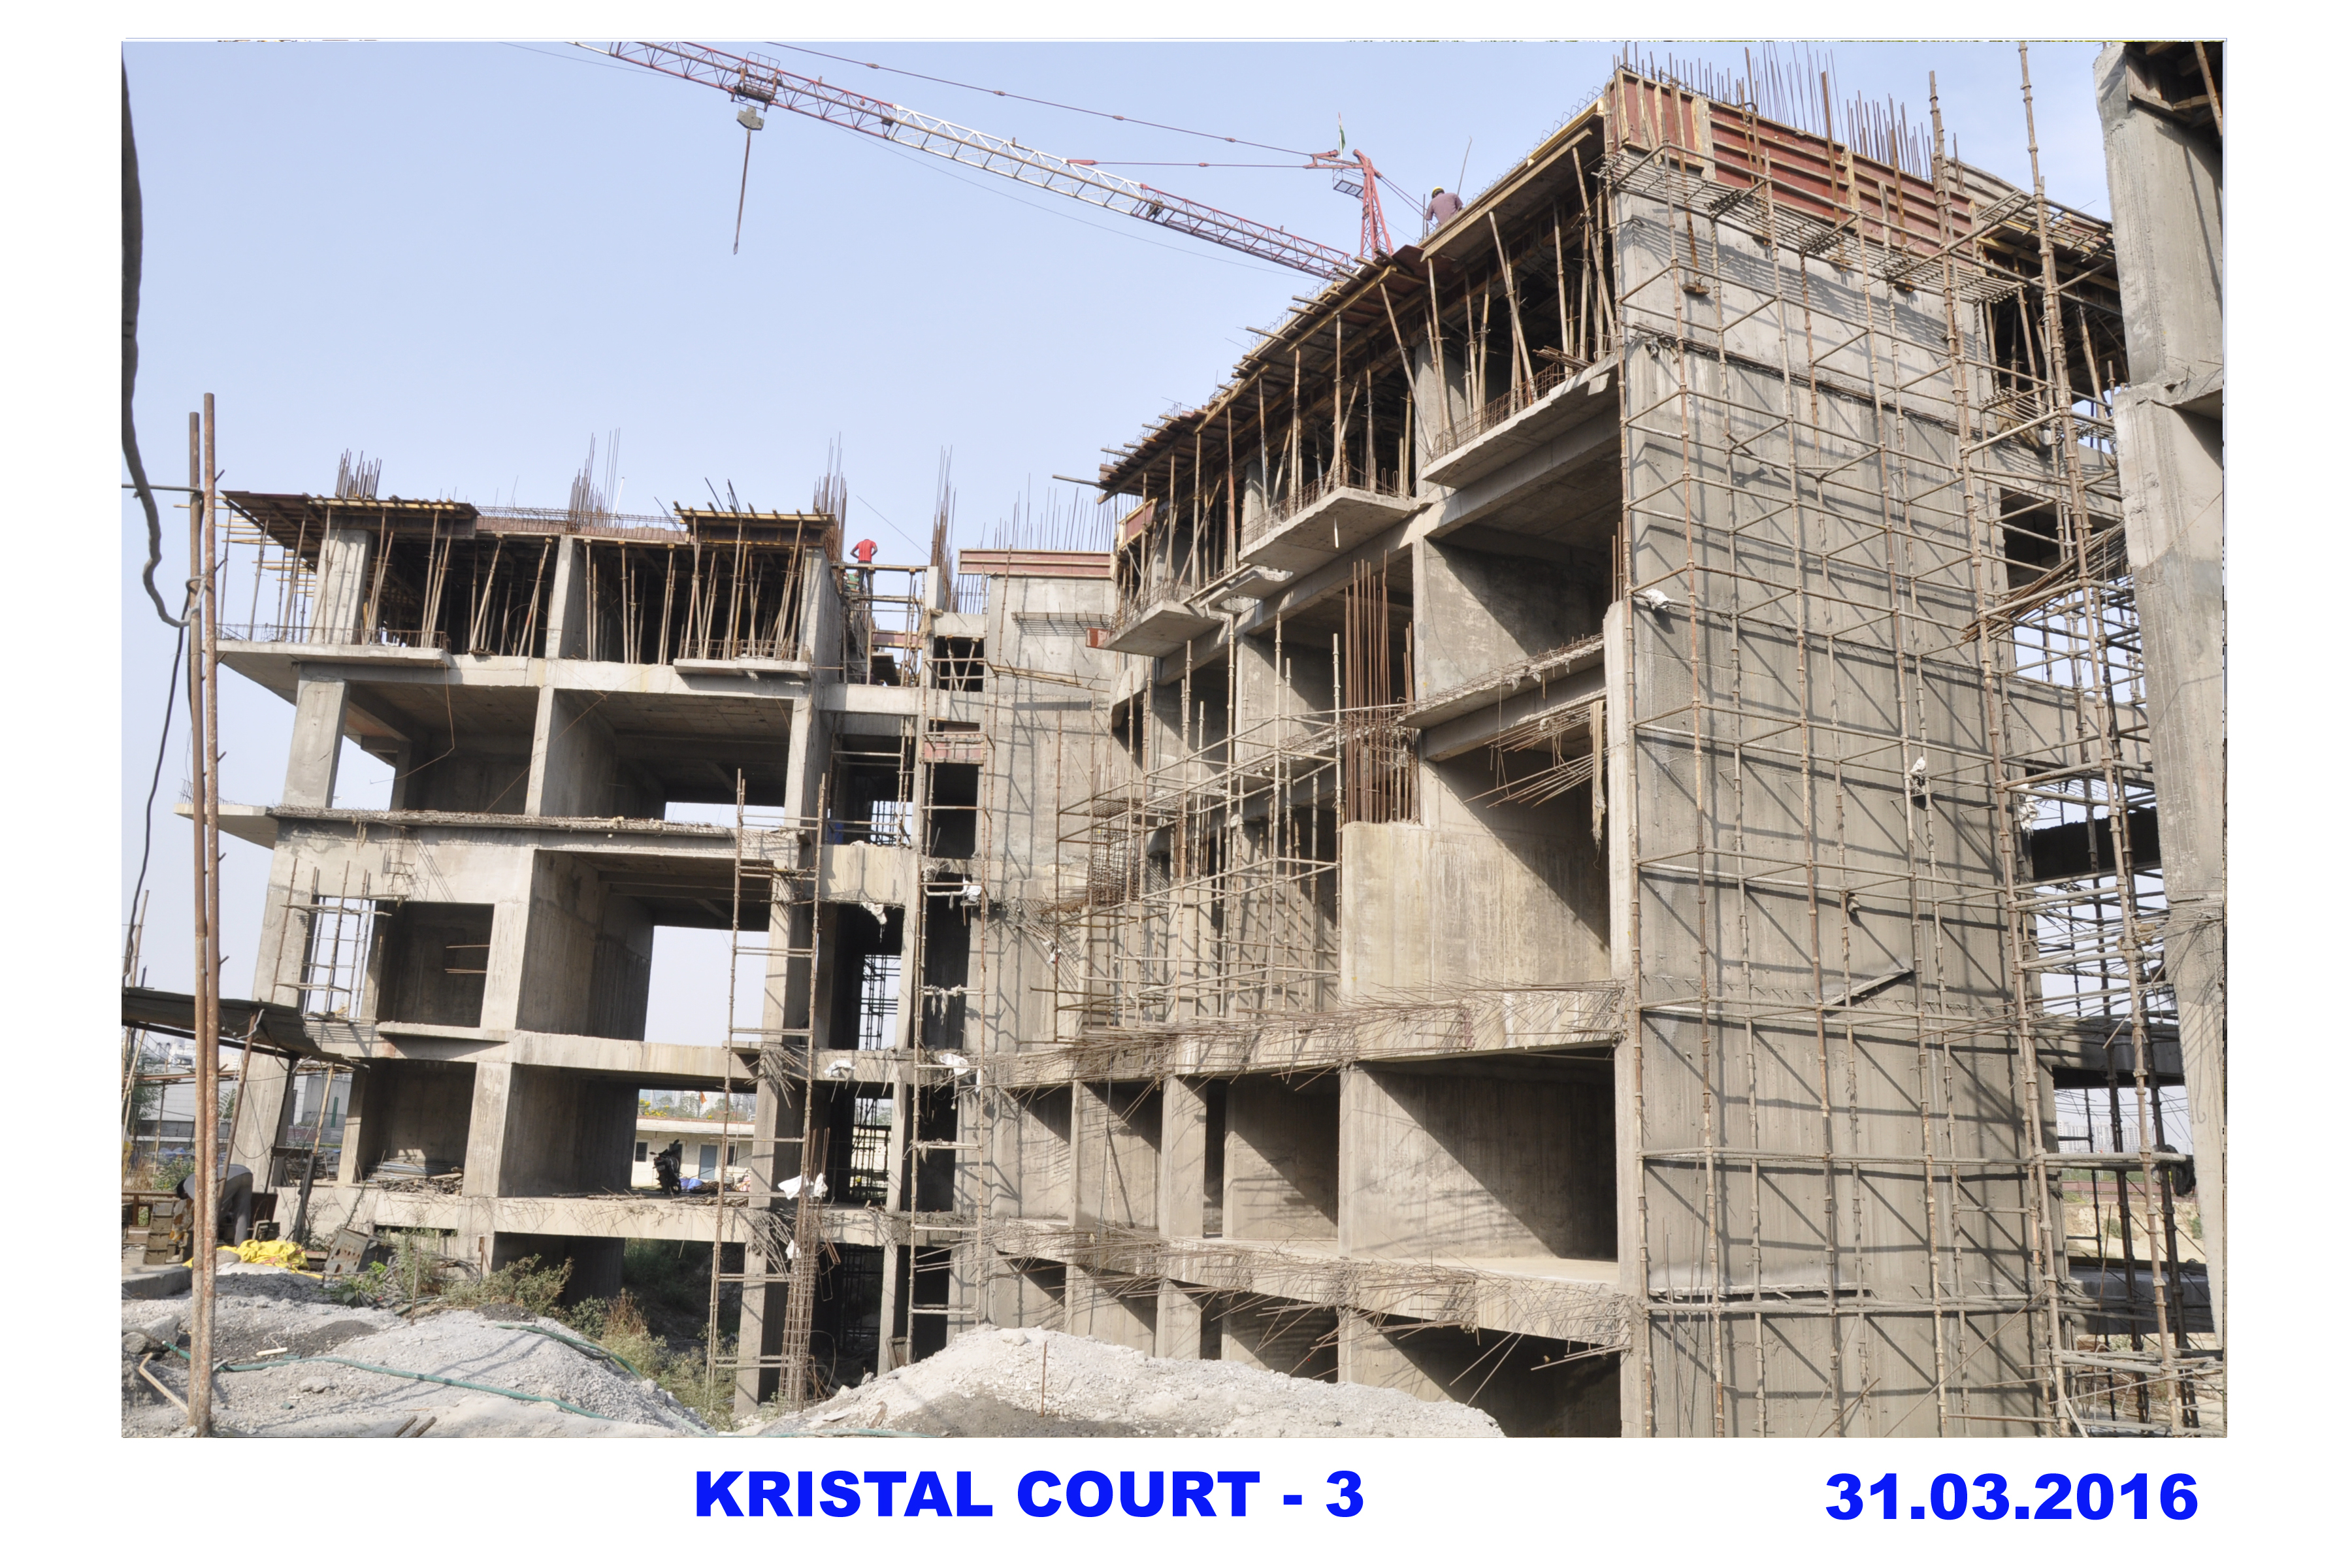 Kristal Court Tower - 3